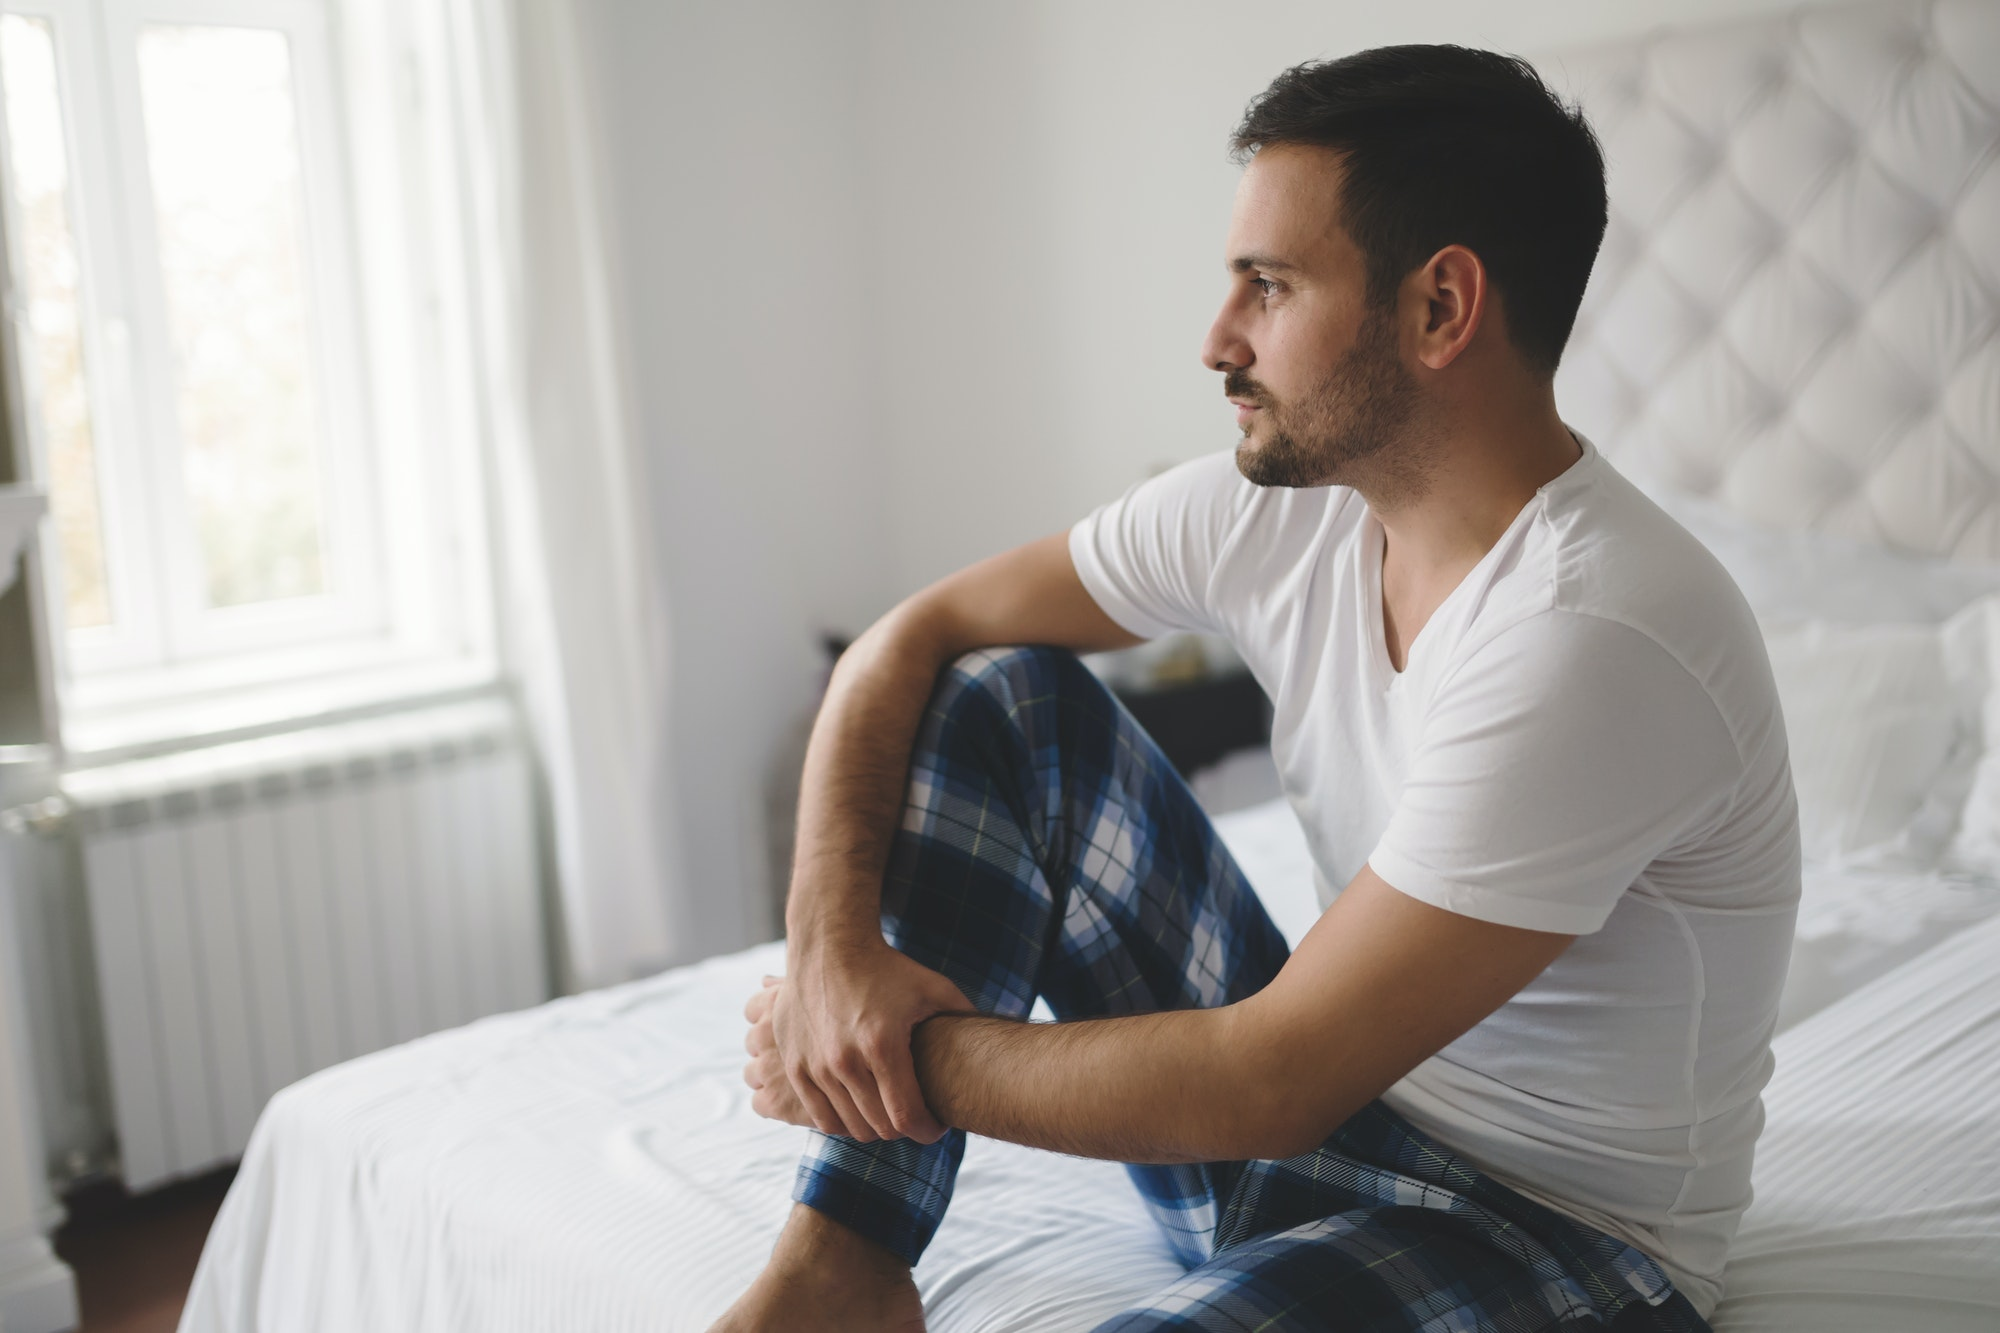 Lonely man in pajamas